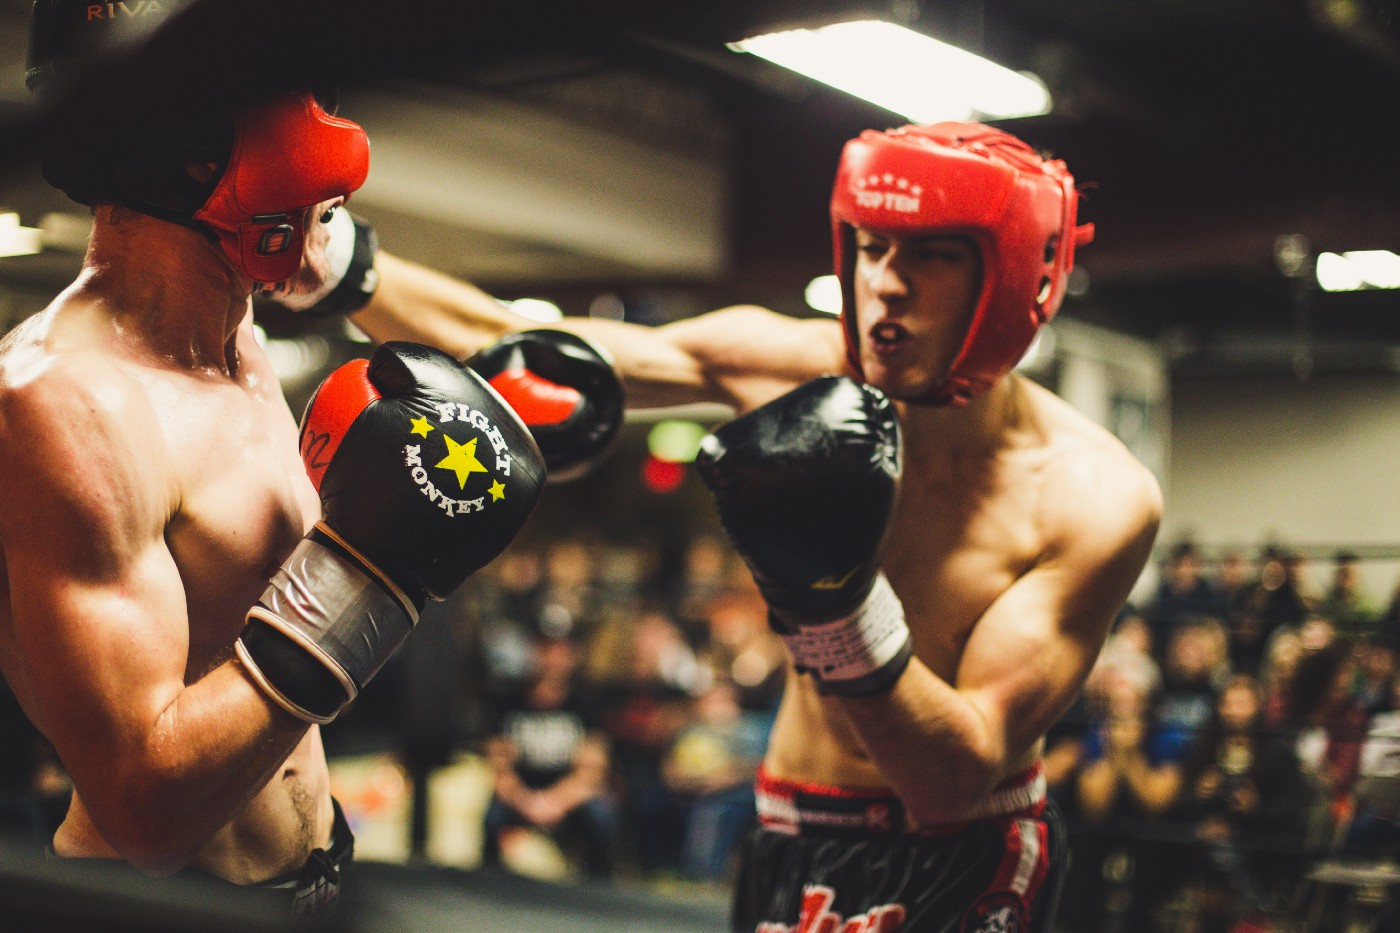 Two boxers in a boxing ring.